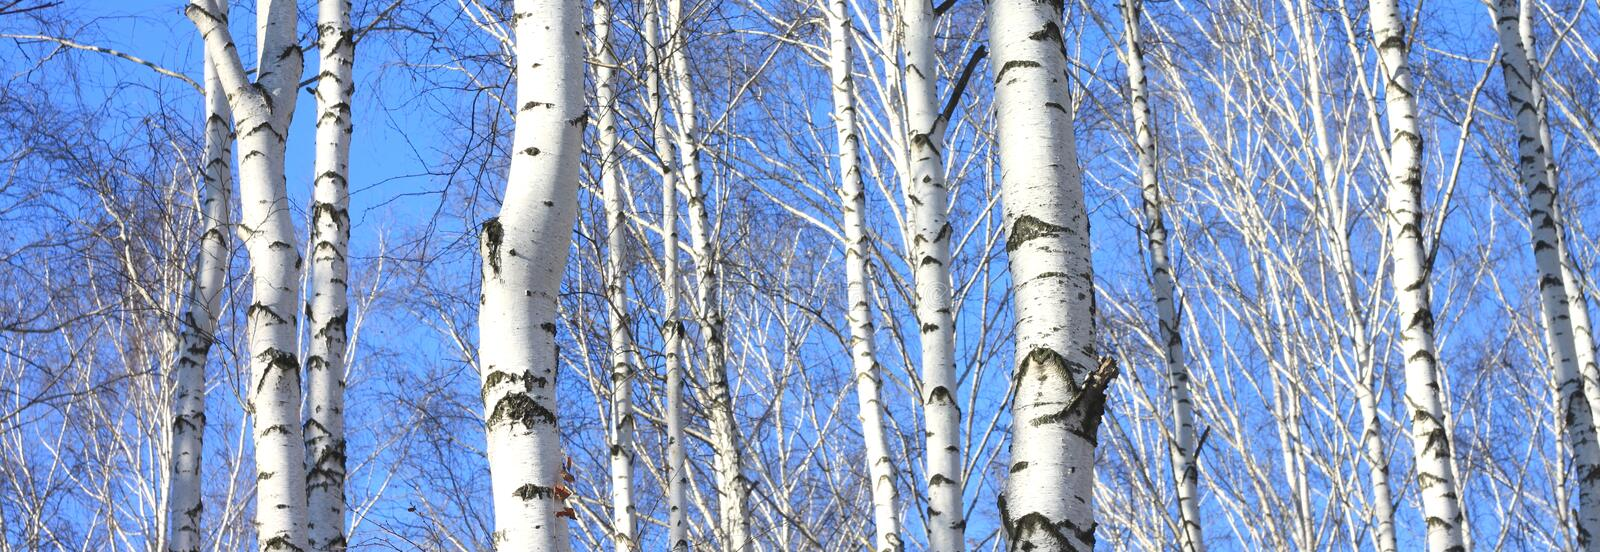 Birch trees in forest royalty free stock images